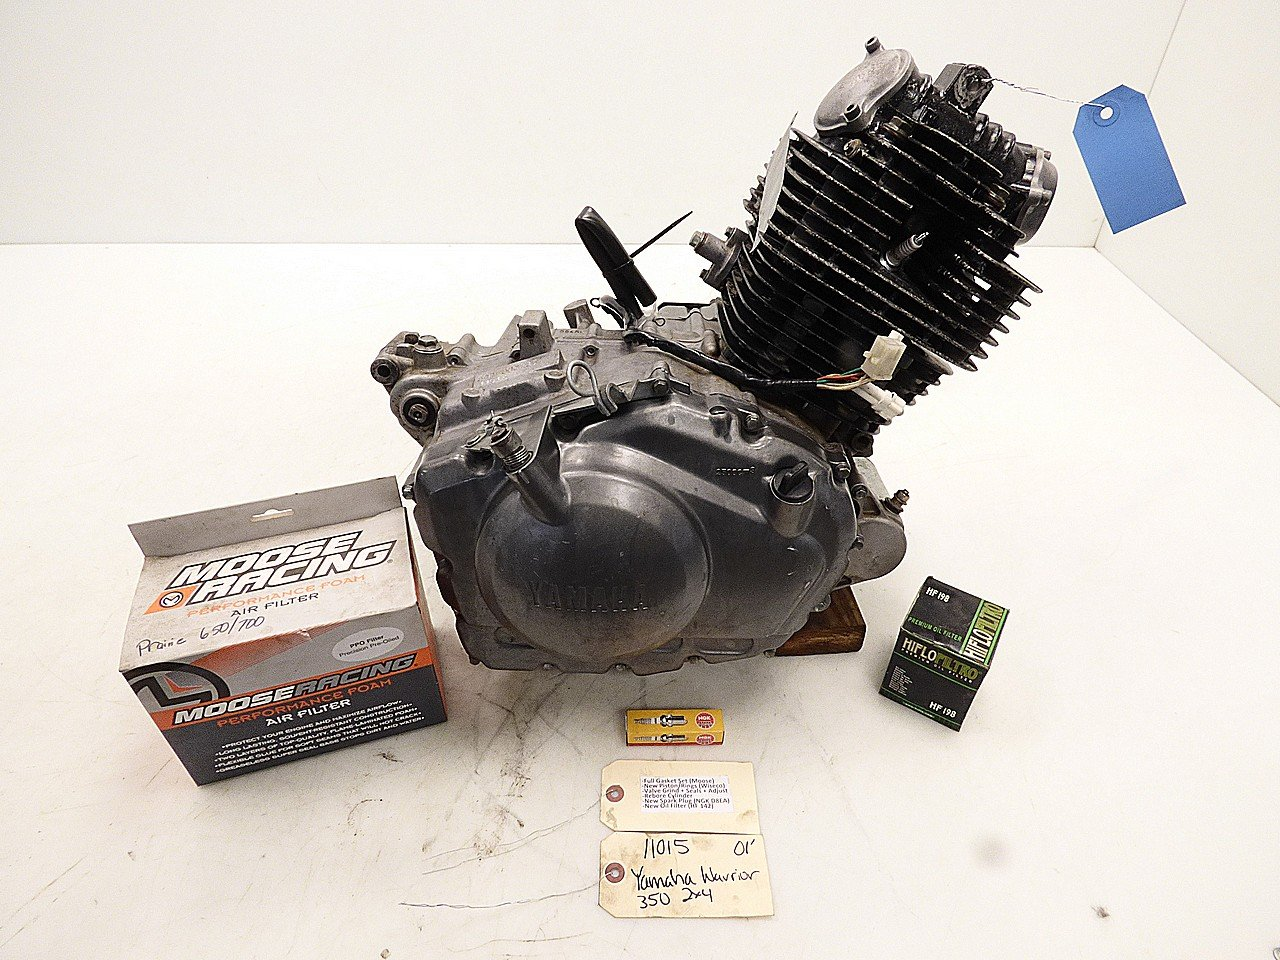 amazon com yamaha warrior 350 87 04 engine motor rebuilt automotive rh amazon com Yamaha Warrior 350 Carburetor Diagram Yamaha Warrior 350 Specifications